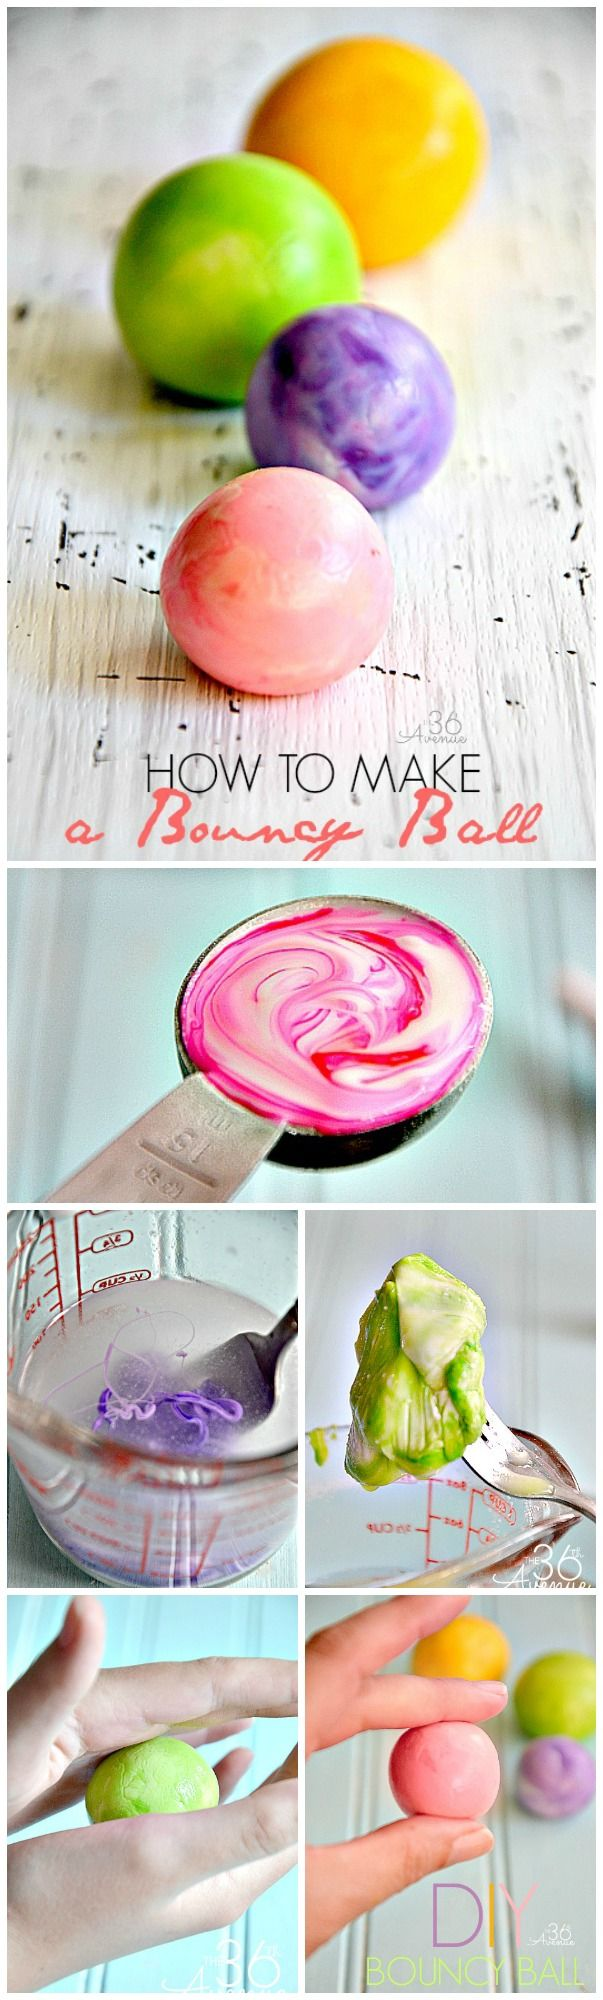 How to make a bouncy ball! Kid's favorite!Crafts Ideas, Kids Stuff, Diy Crafts, Borax Bouncy Ball, Bouncy Balls, Diy Bouncy, Kids Crafts, Fun Crafts, Diy Projects